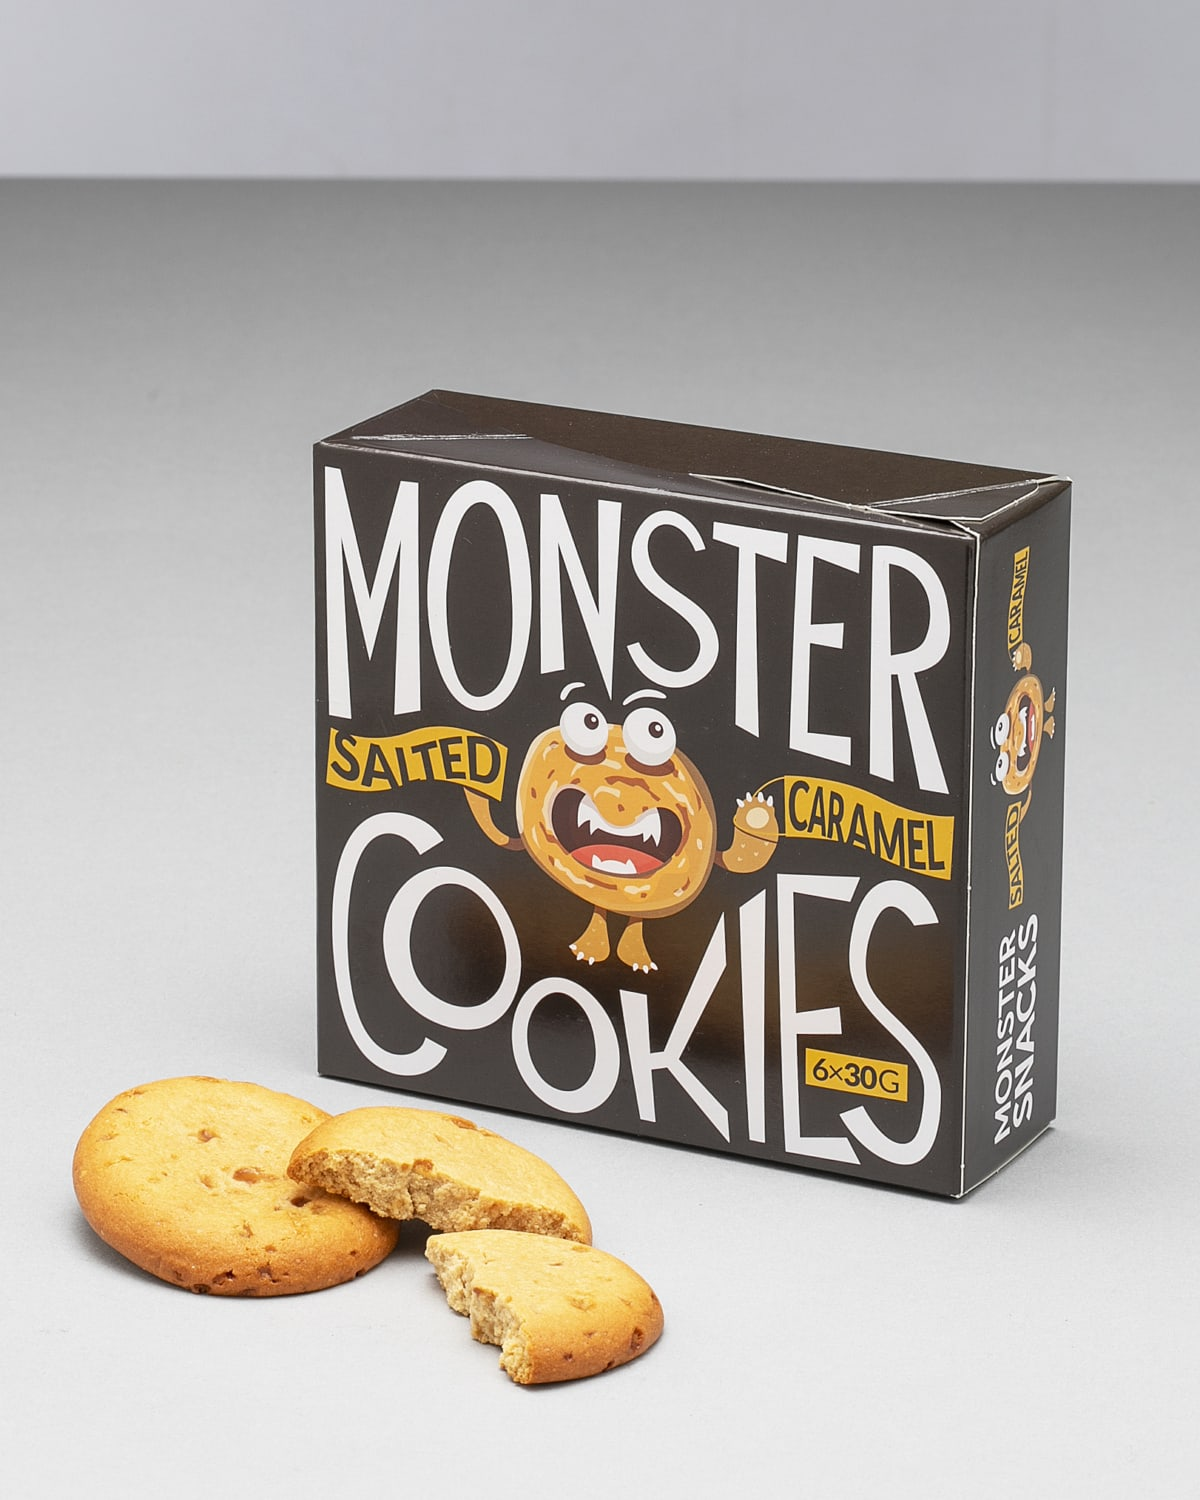 monster salted caramel cookies copy